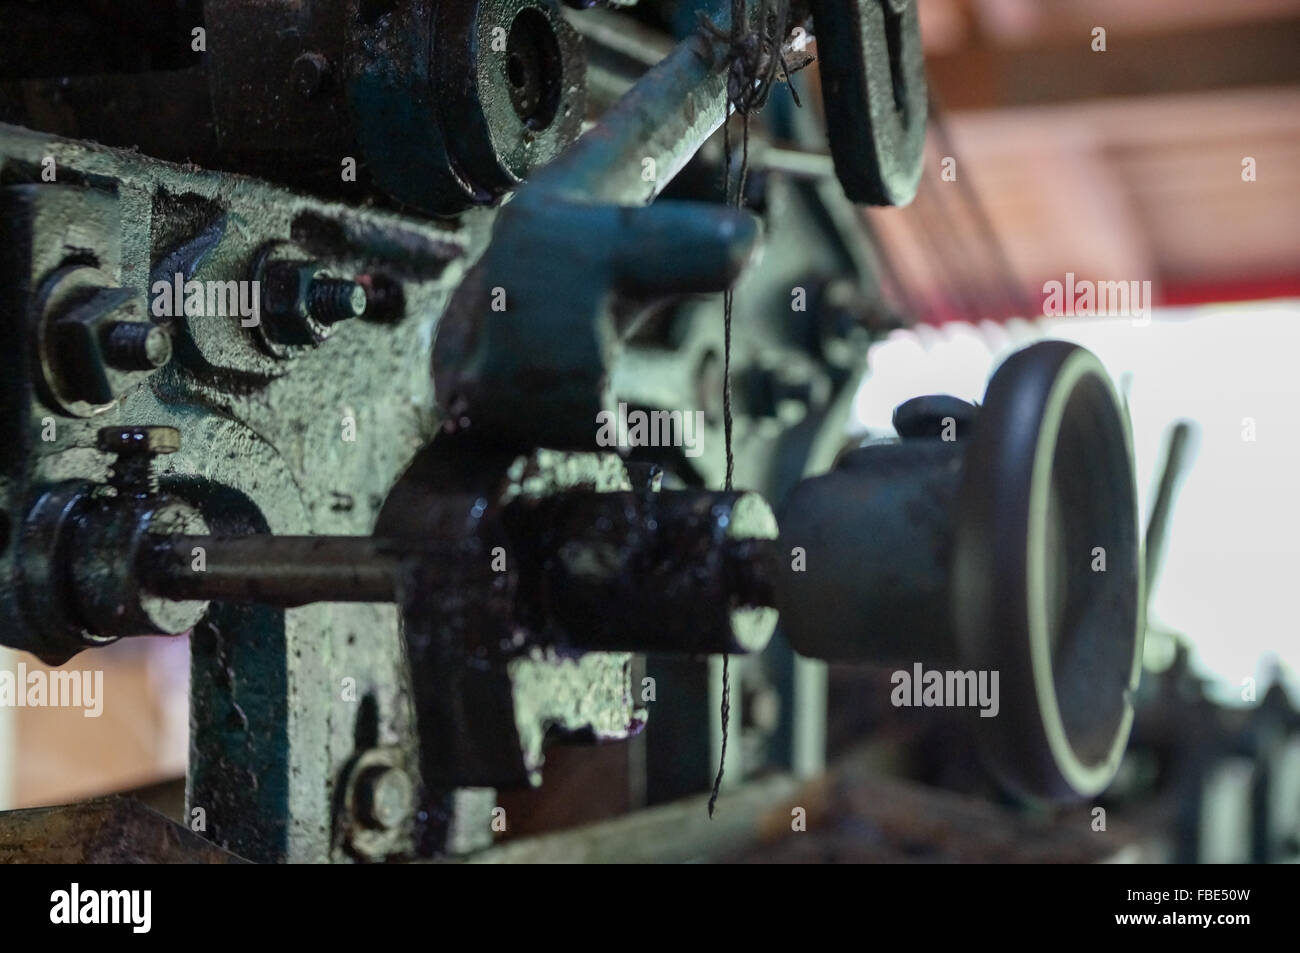 Close-Up Of Machinery At Textile Factory - Stock Image